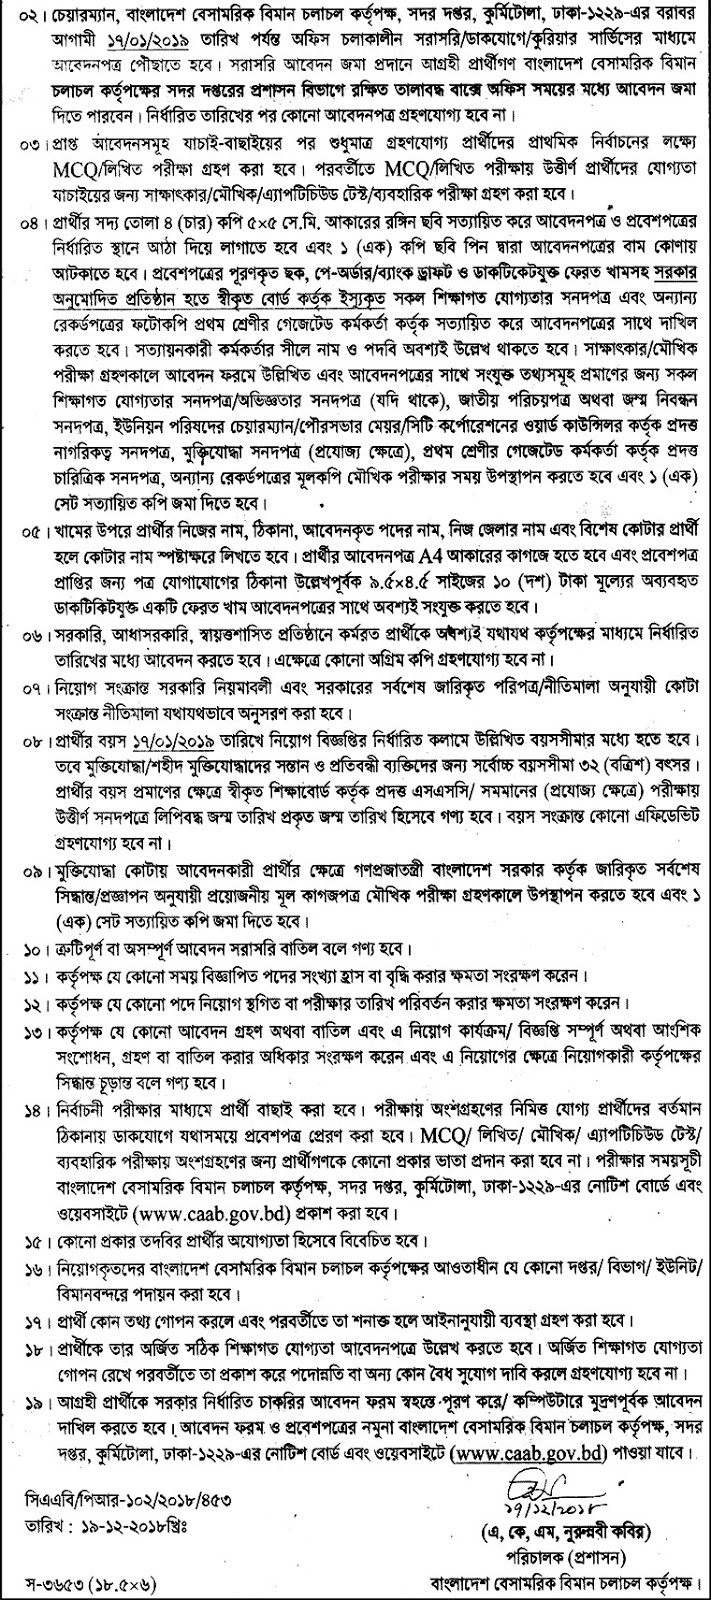 Civil Aviation Authority of Bangladesh (Caab) Job Circular 2018